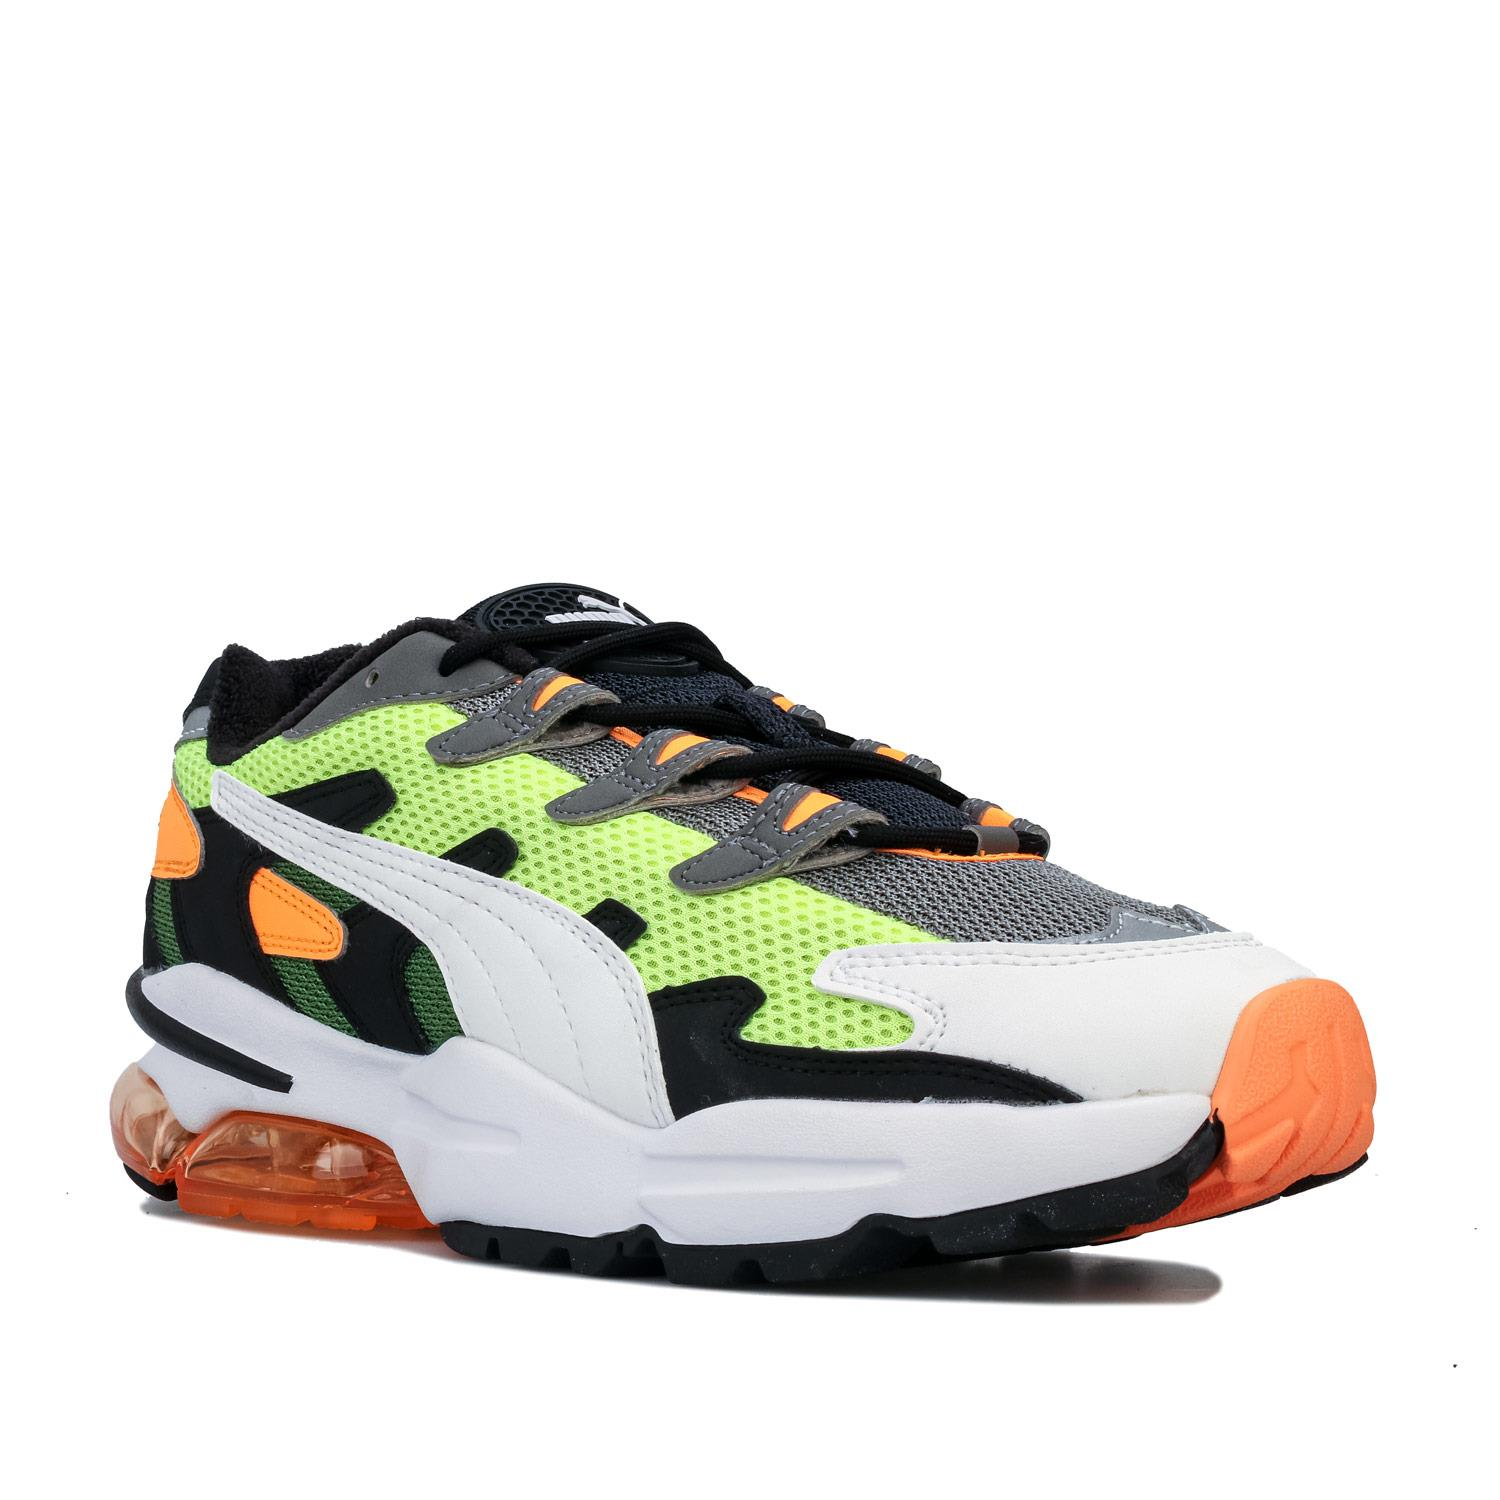 Mens-Puma-Cell-Alien-OG-Trainers-in-Blue-Green-Black-Red-Blue-and-Yellow thumbnail 21